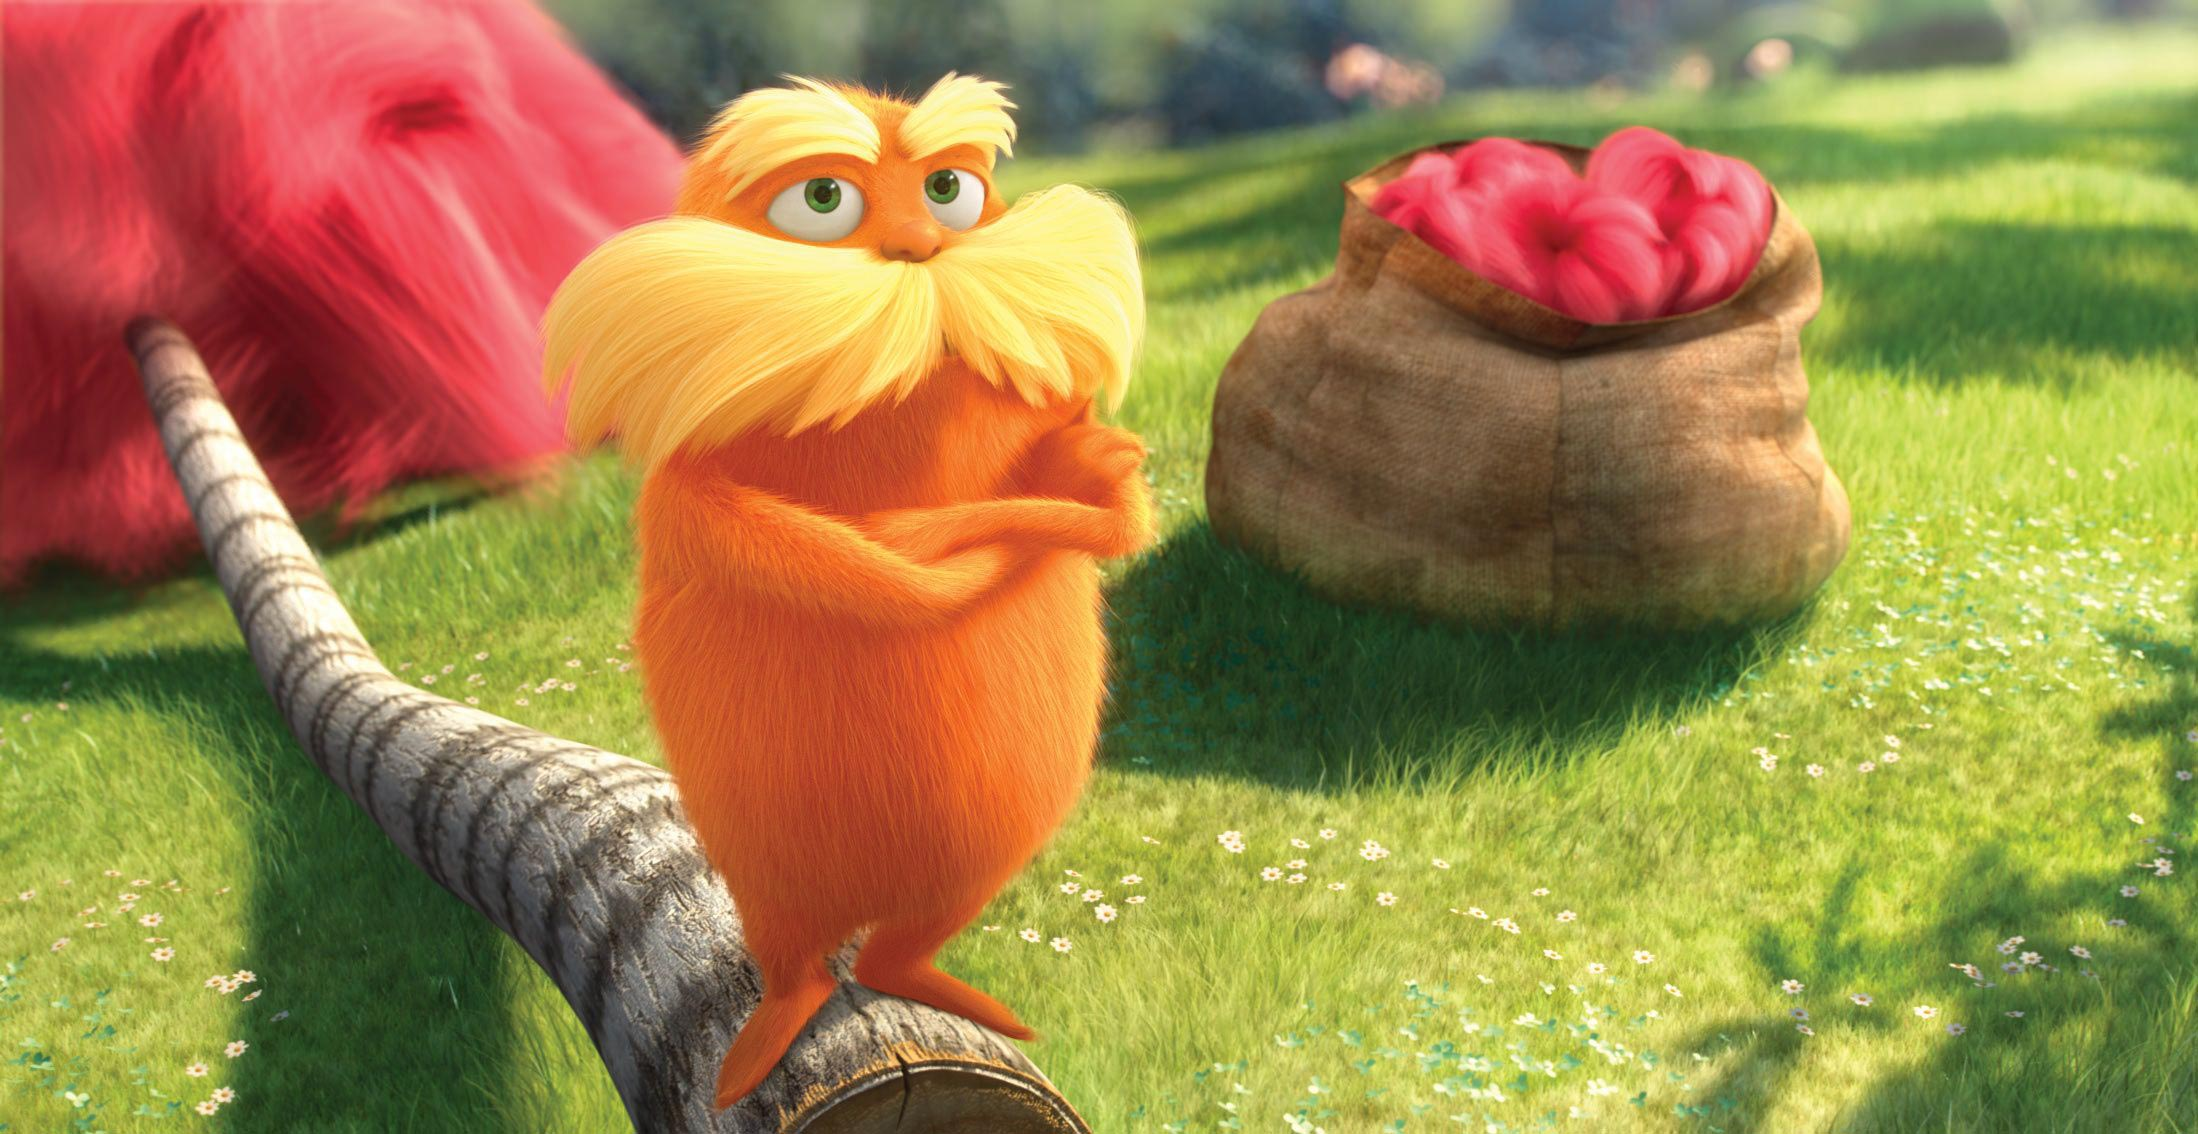 """The Lorax"" is enjoyable, if preachy"